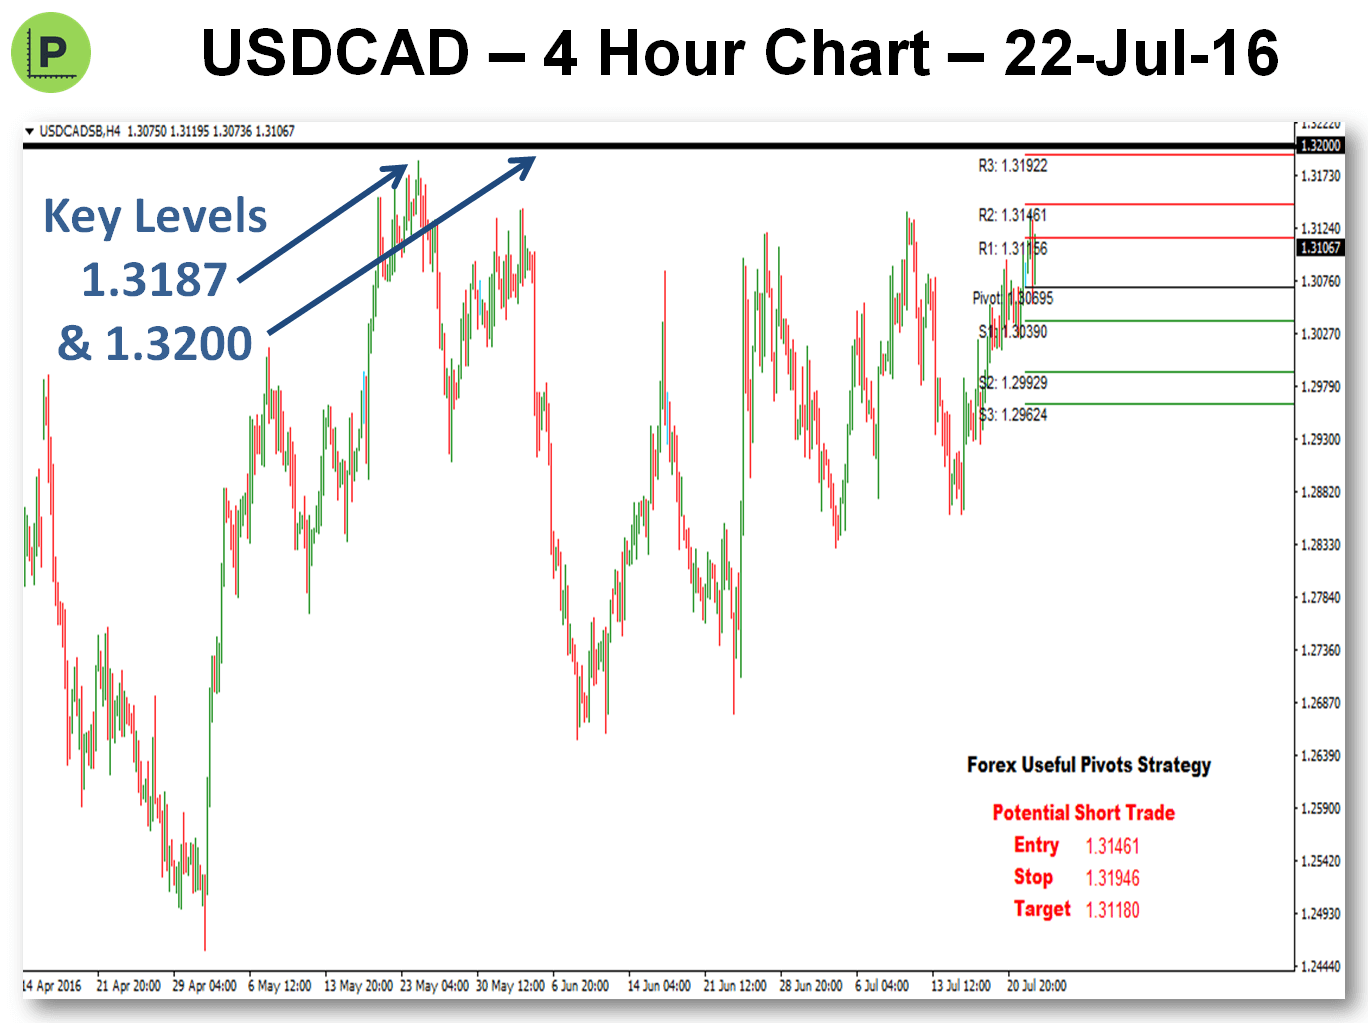 Potential Pivots Trades For Next Week - 23-Jul-16 USDCAD